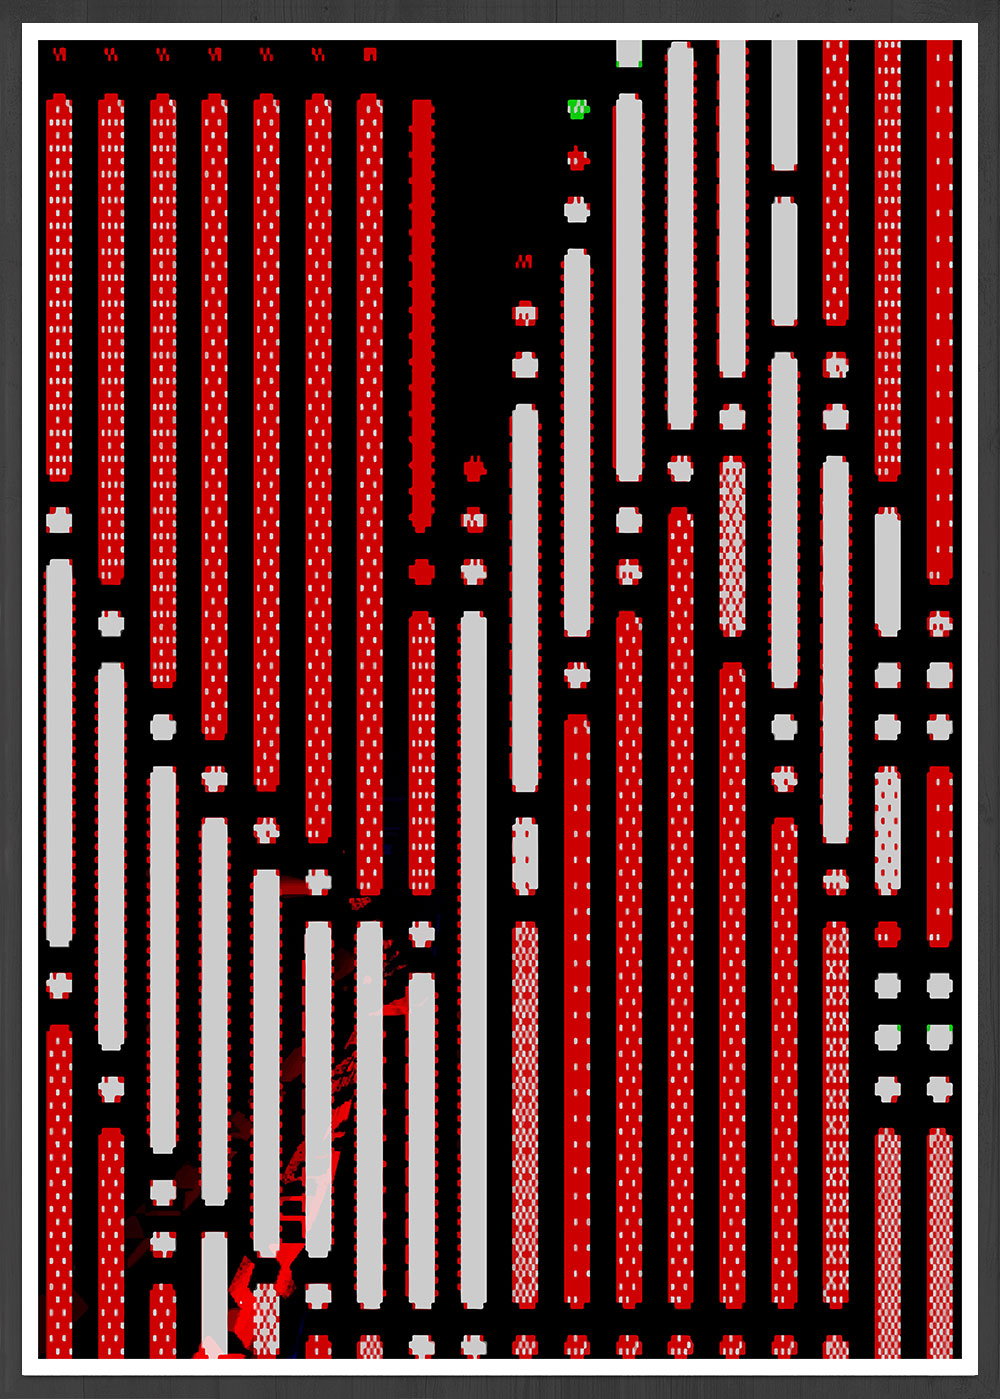 Code 2 Glitch Art Print in a frame